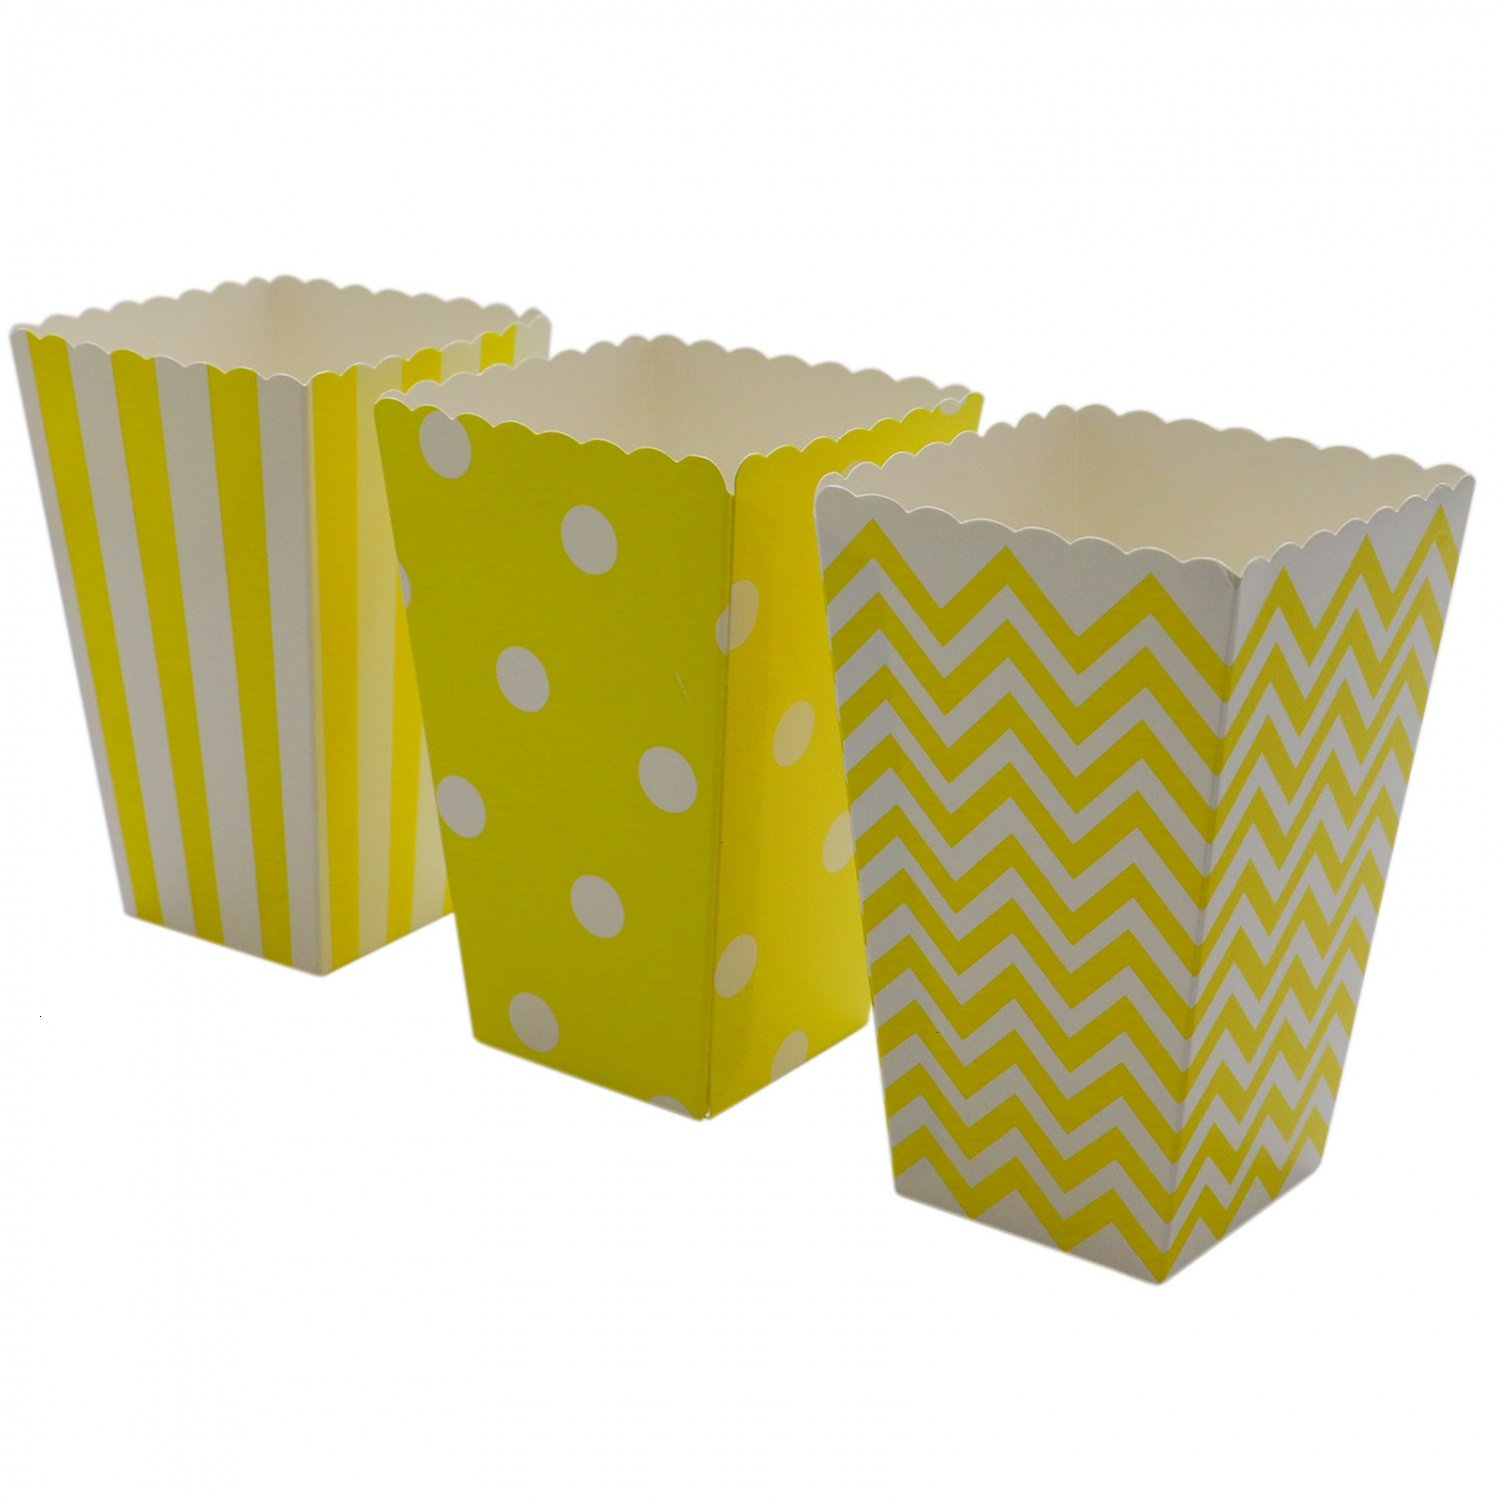 HUELE 48 Pcs Yellow Popcorn Boxes Container Striped Polka Dots for Carnival Party Favor Movie